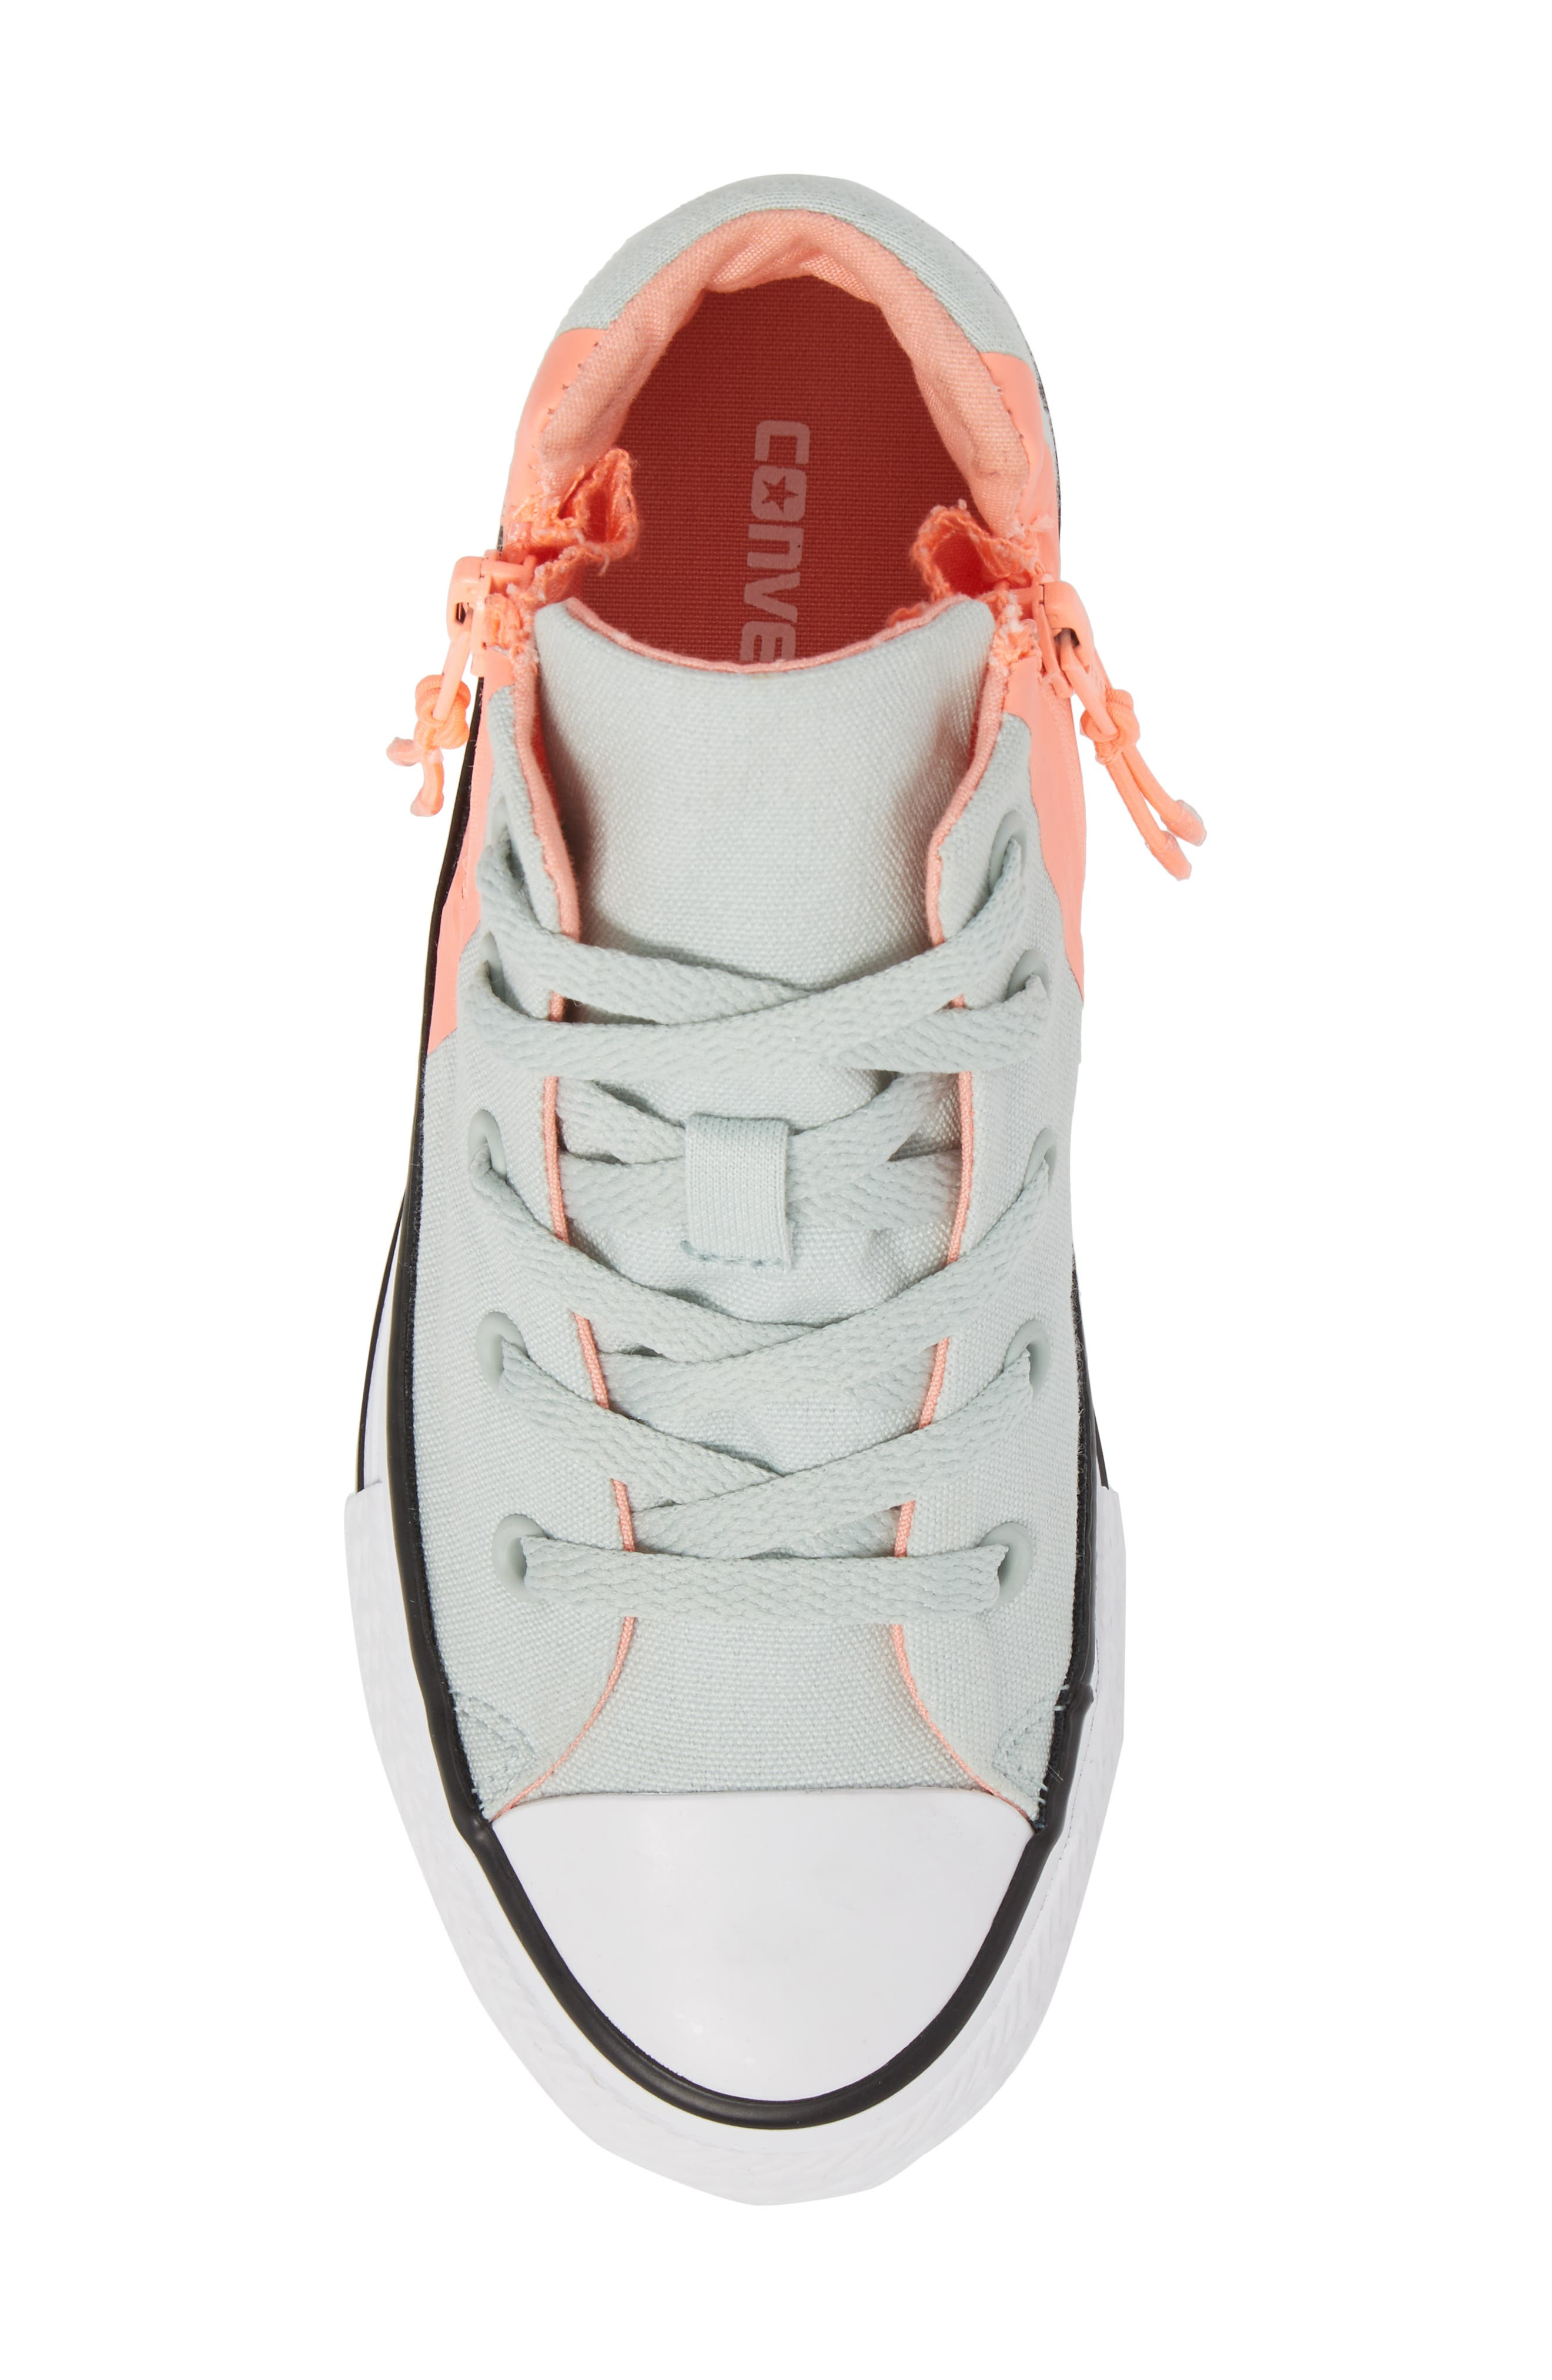 Chuck Taylor<sup>®</sup> All Star<sup>®</sup> Sport Zip High Top Sneaker,                             Alternate thumbnail 5, color,                             416